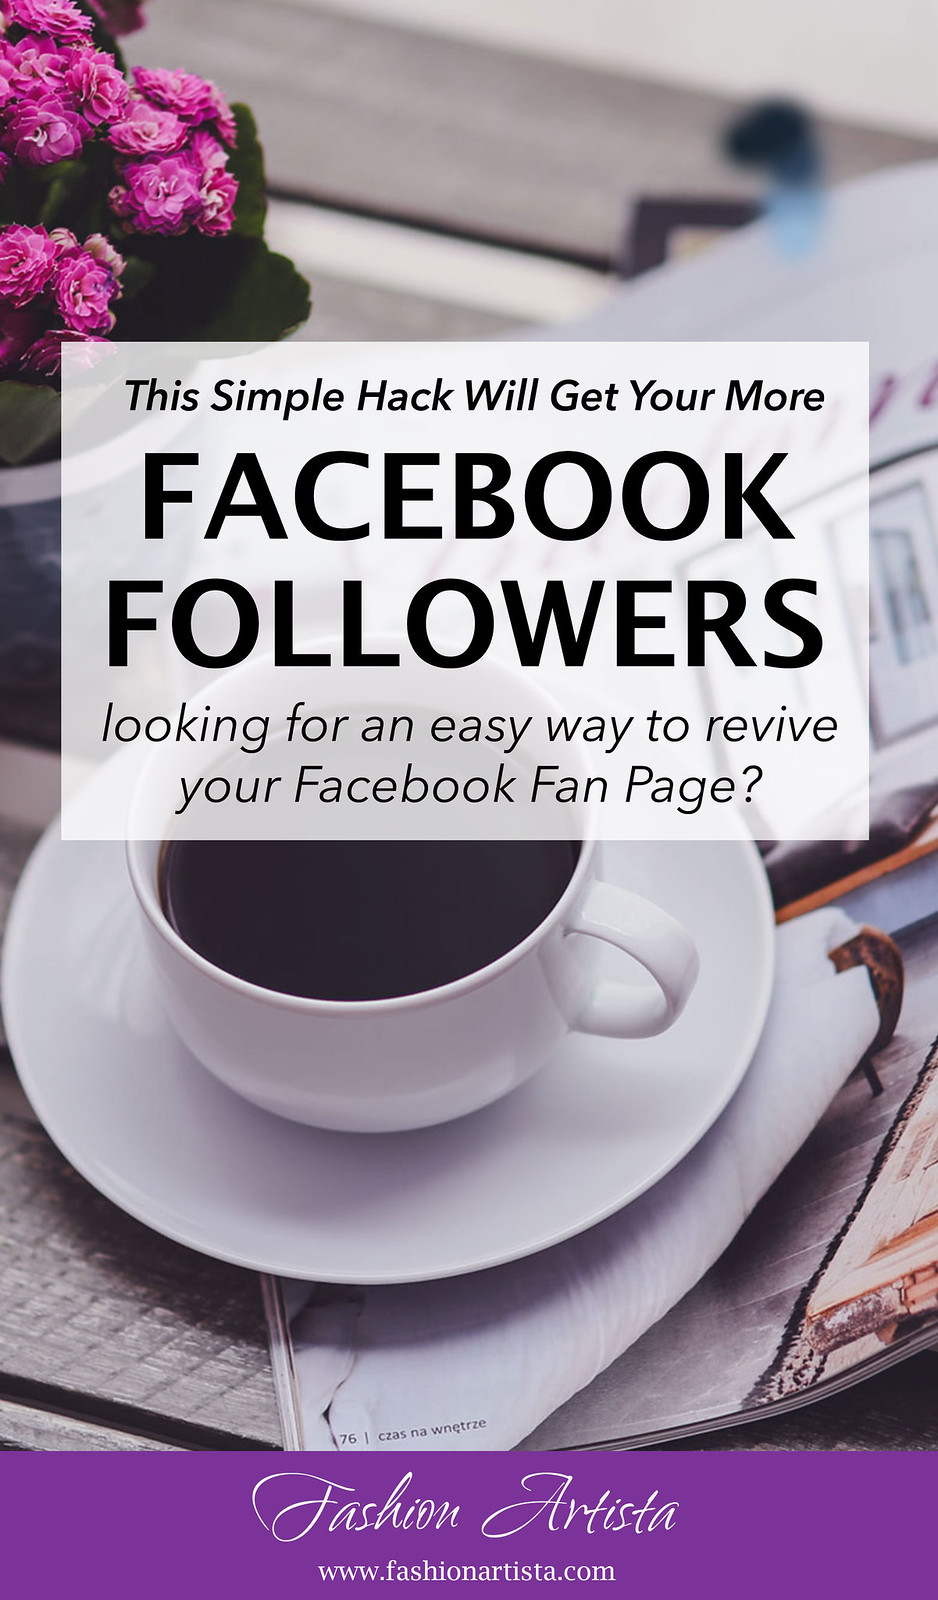 www.fashionartista.com - Get More Facebook Page Likes With this Powerful Hack - and you can also get my free ultimate guide to Effective Facebook Targeting!